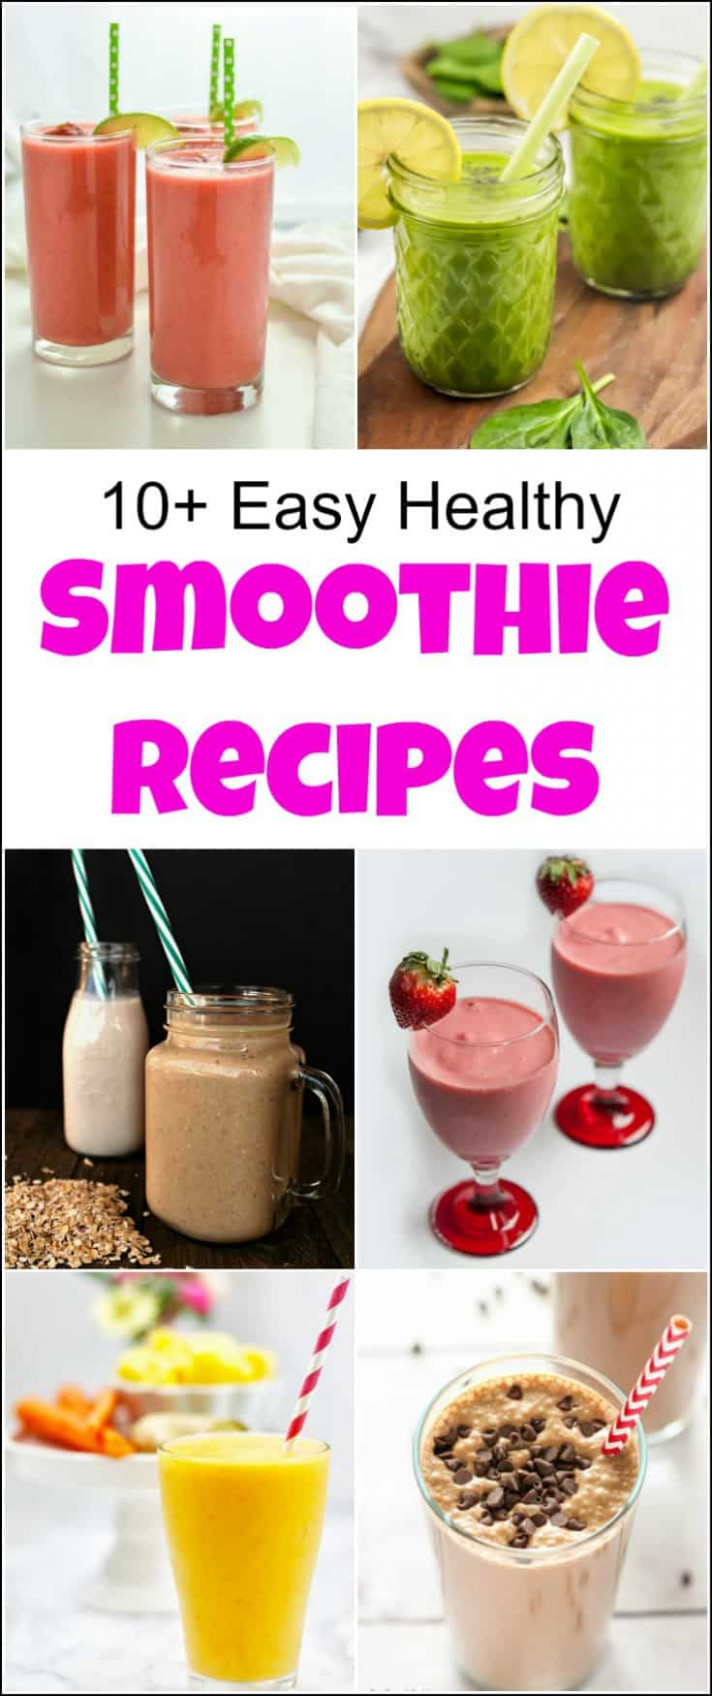 10+ Easy Healthy Smoothie Recipes Your Whole Family Will Love - healthy recipes your husband will love